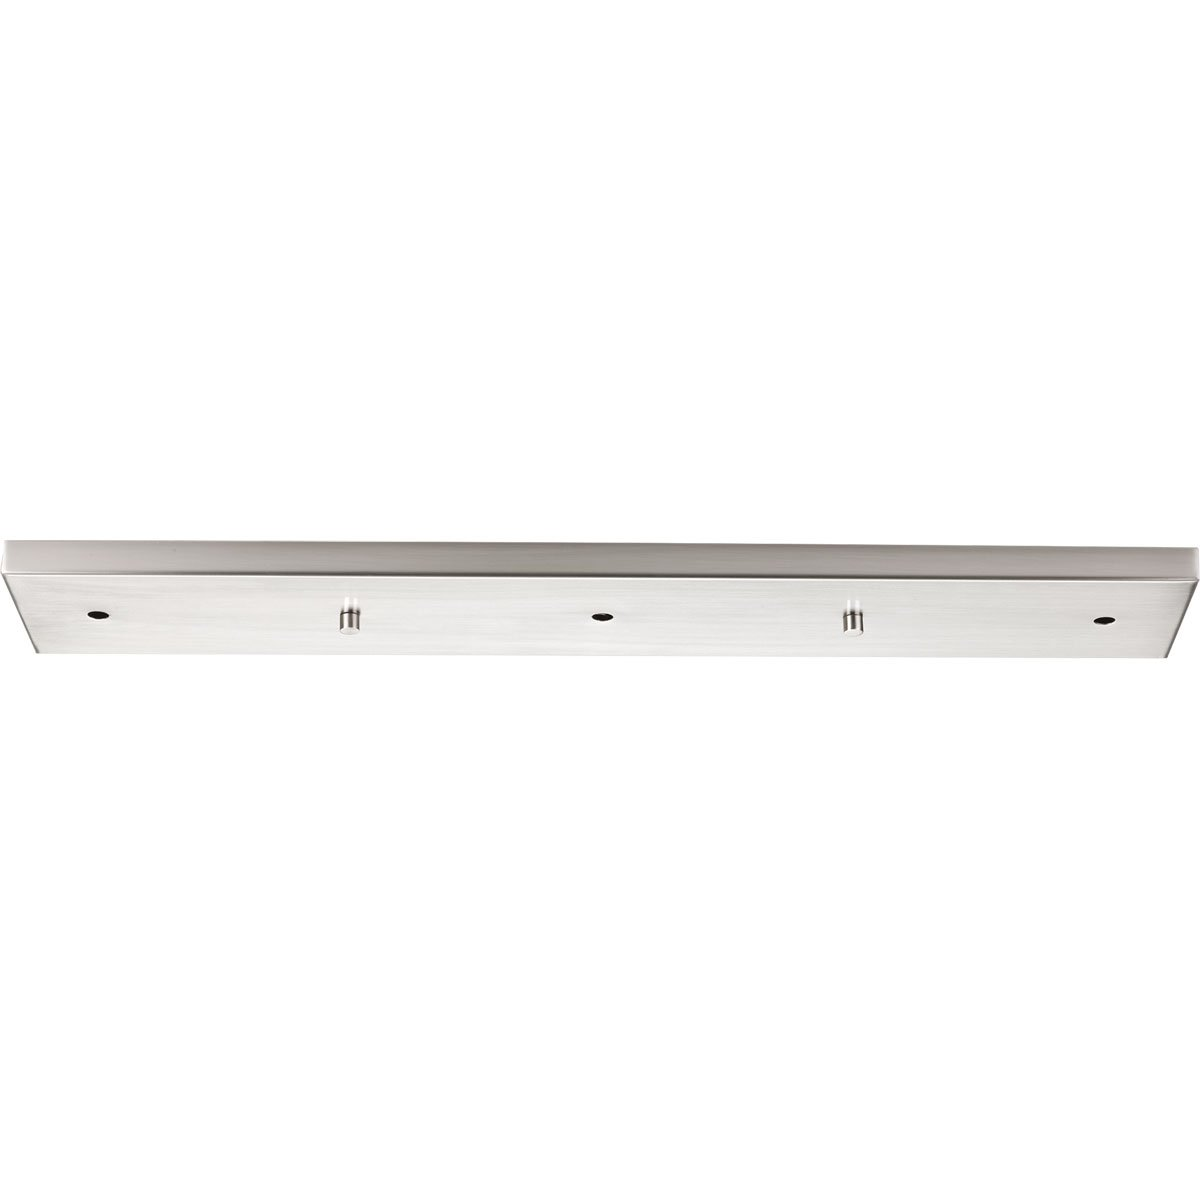 Progress Lighting P8404-09 Traditional/Casual Canopy Accessory, Brushed Nickel by Progress Lighting (Image #5)